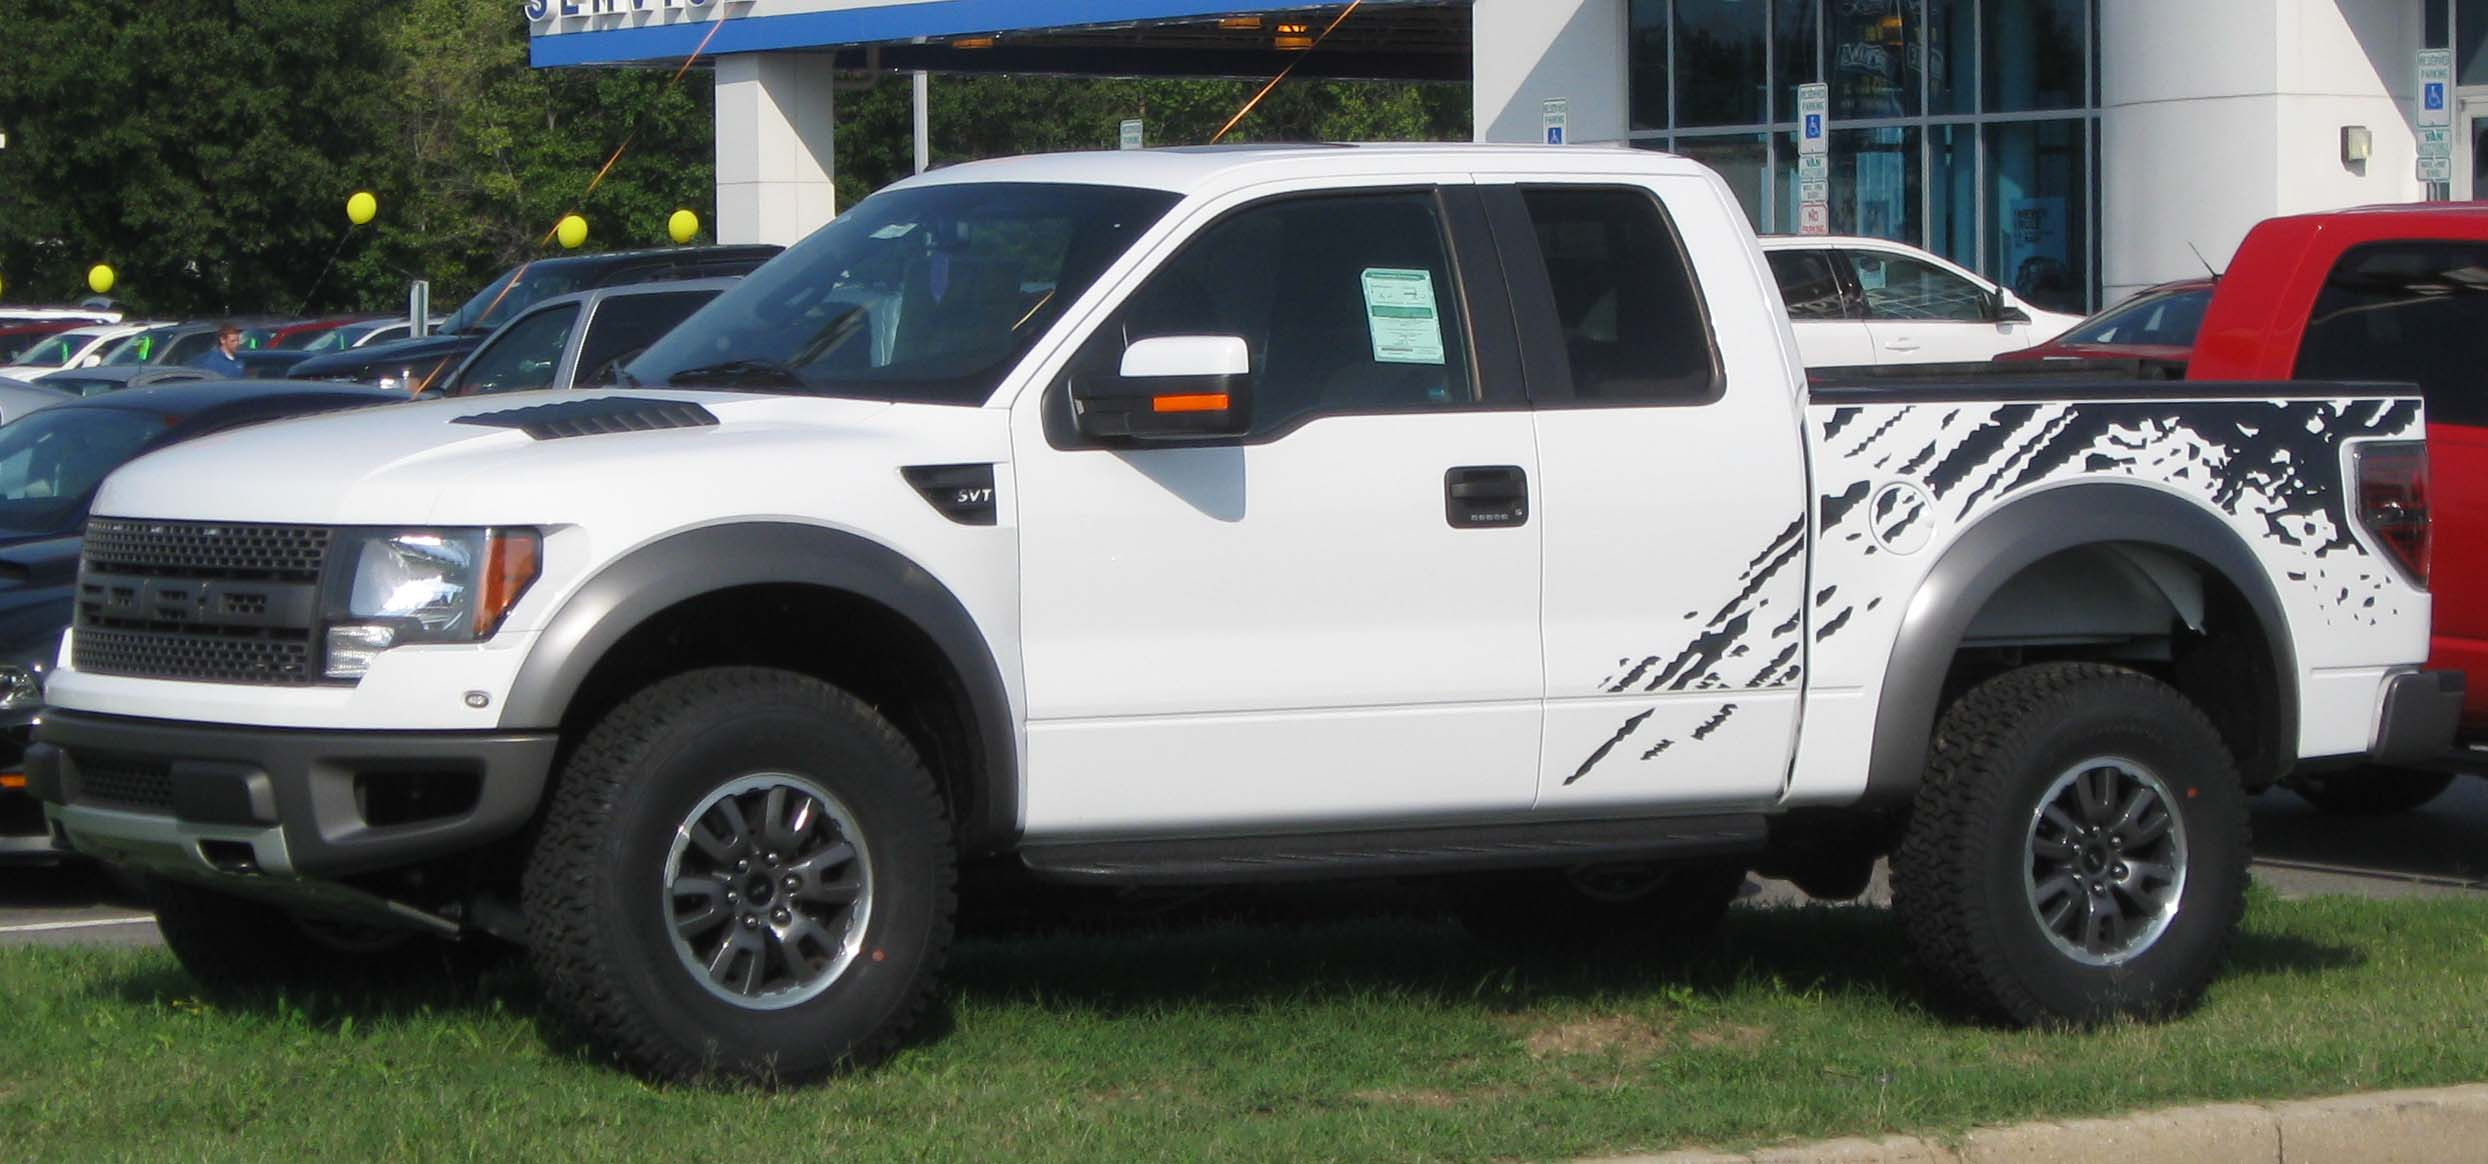 Description 2010 Ford F-150 Raptor -- 08-26-2010.jpg